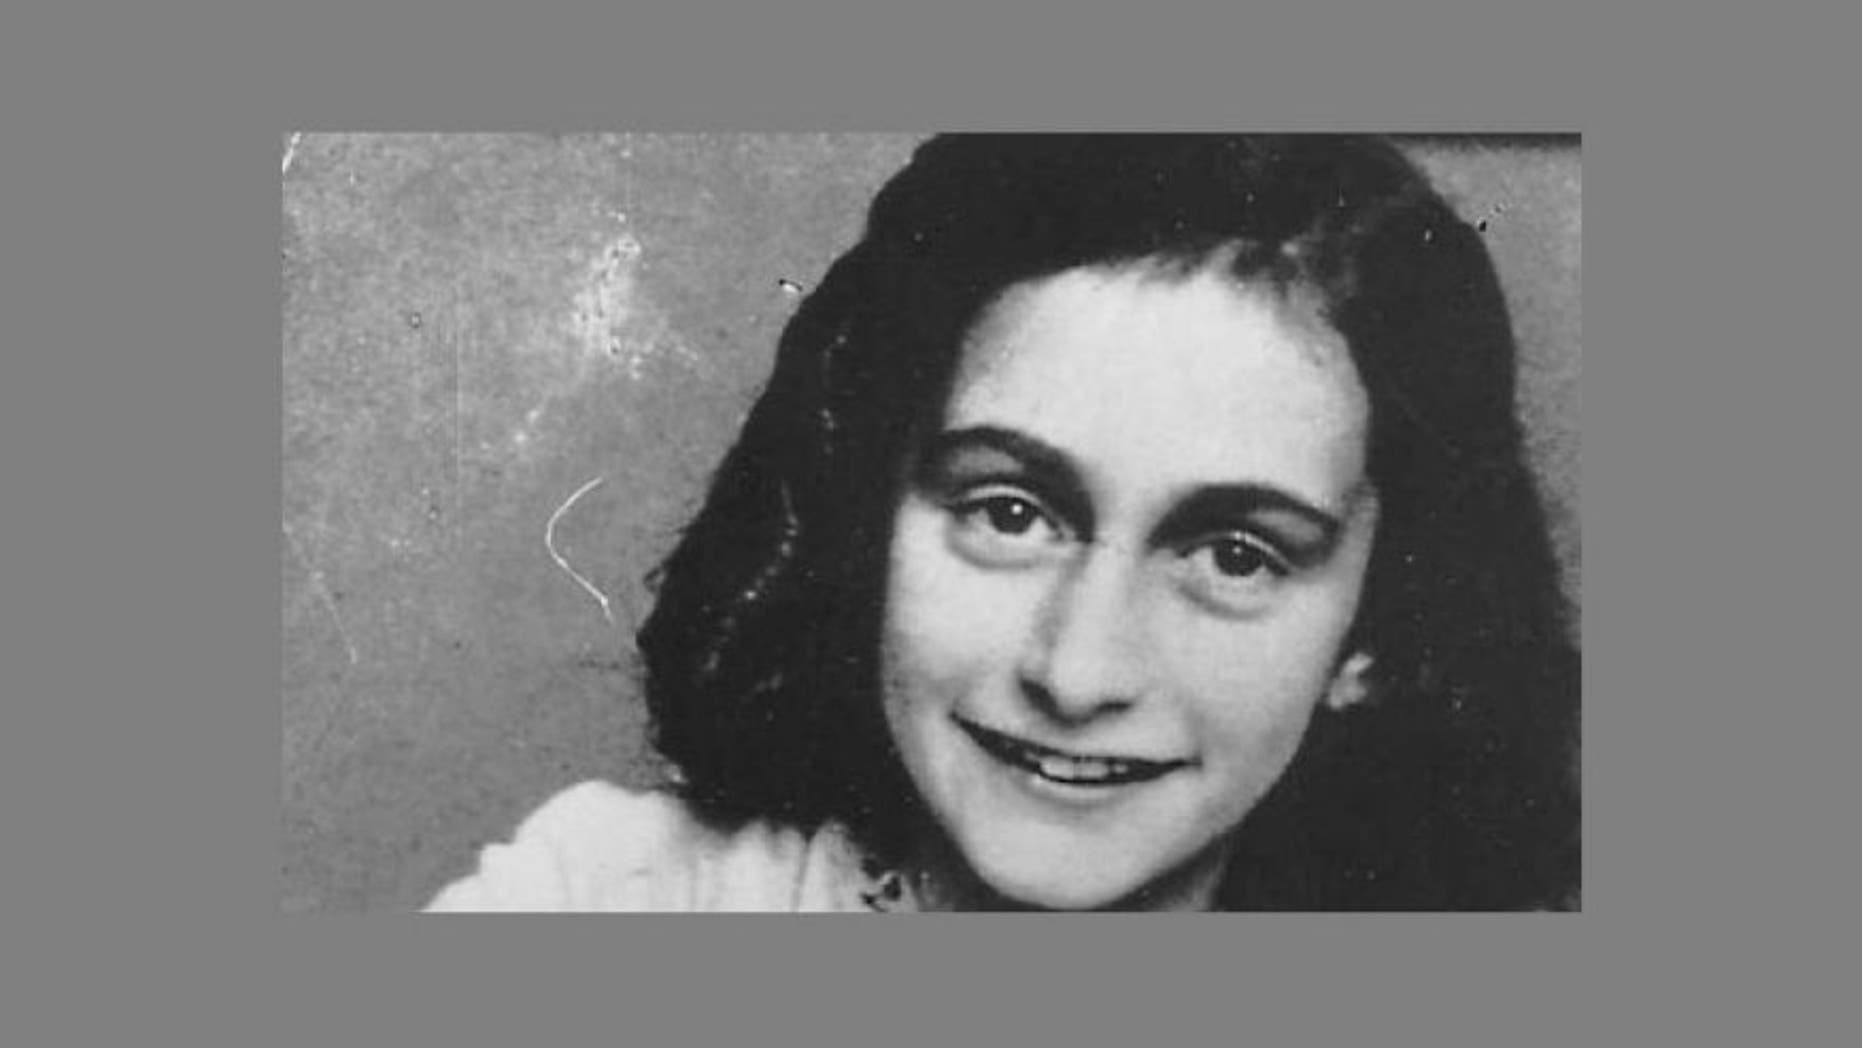 Former FBI agent Vince Pankoke will lead a team of 19 top forensic experts using new investigative techniques to uncover leads into who told the Nazis about Anne Frank's hideout during World War II.